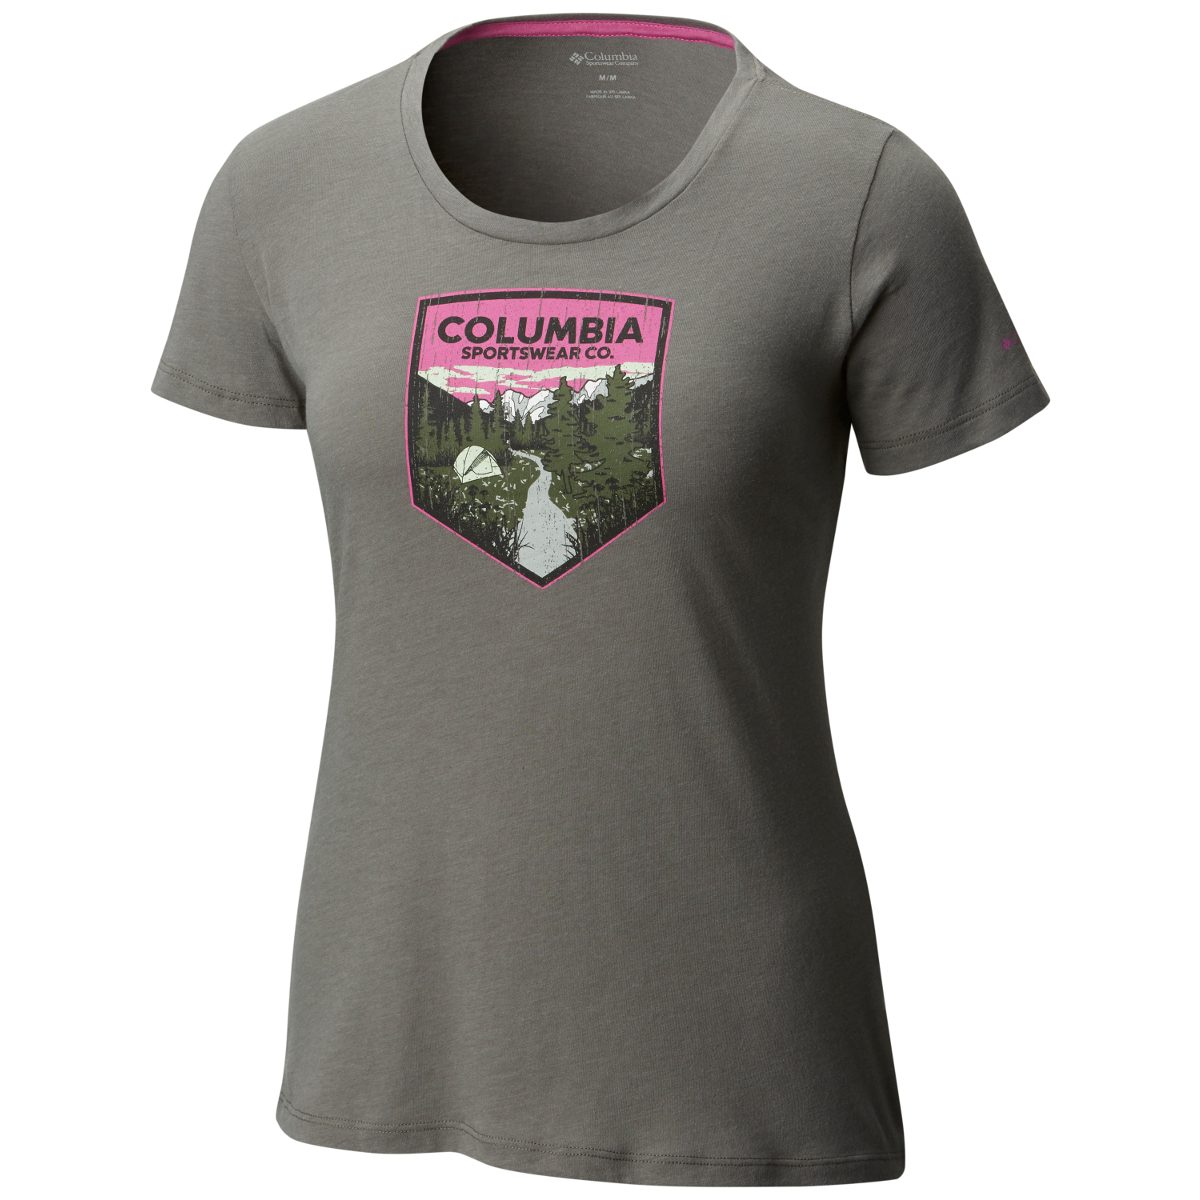 Columbia Women's Columbia Badge Tee - Black, XL